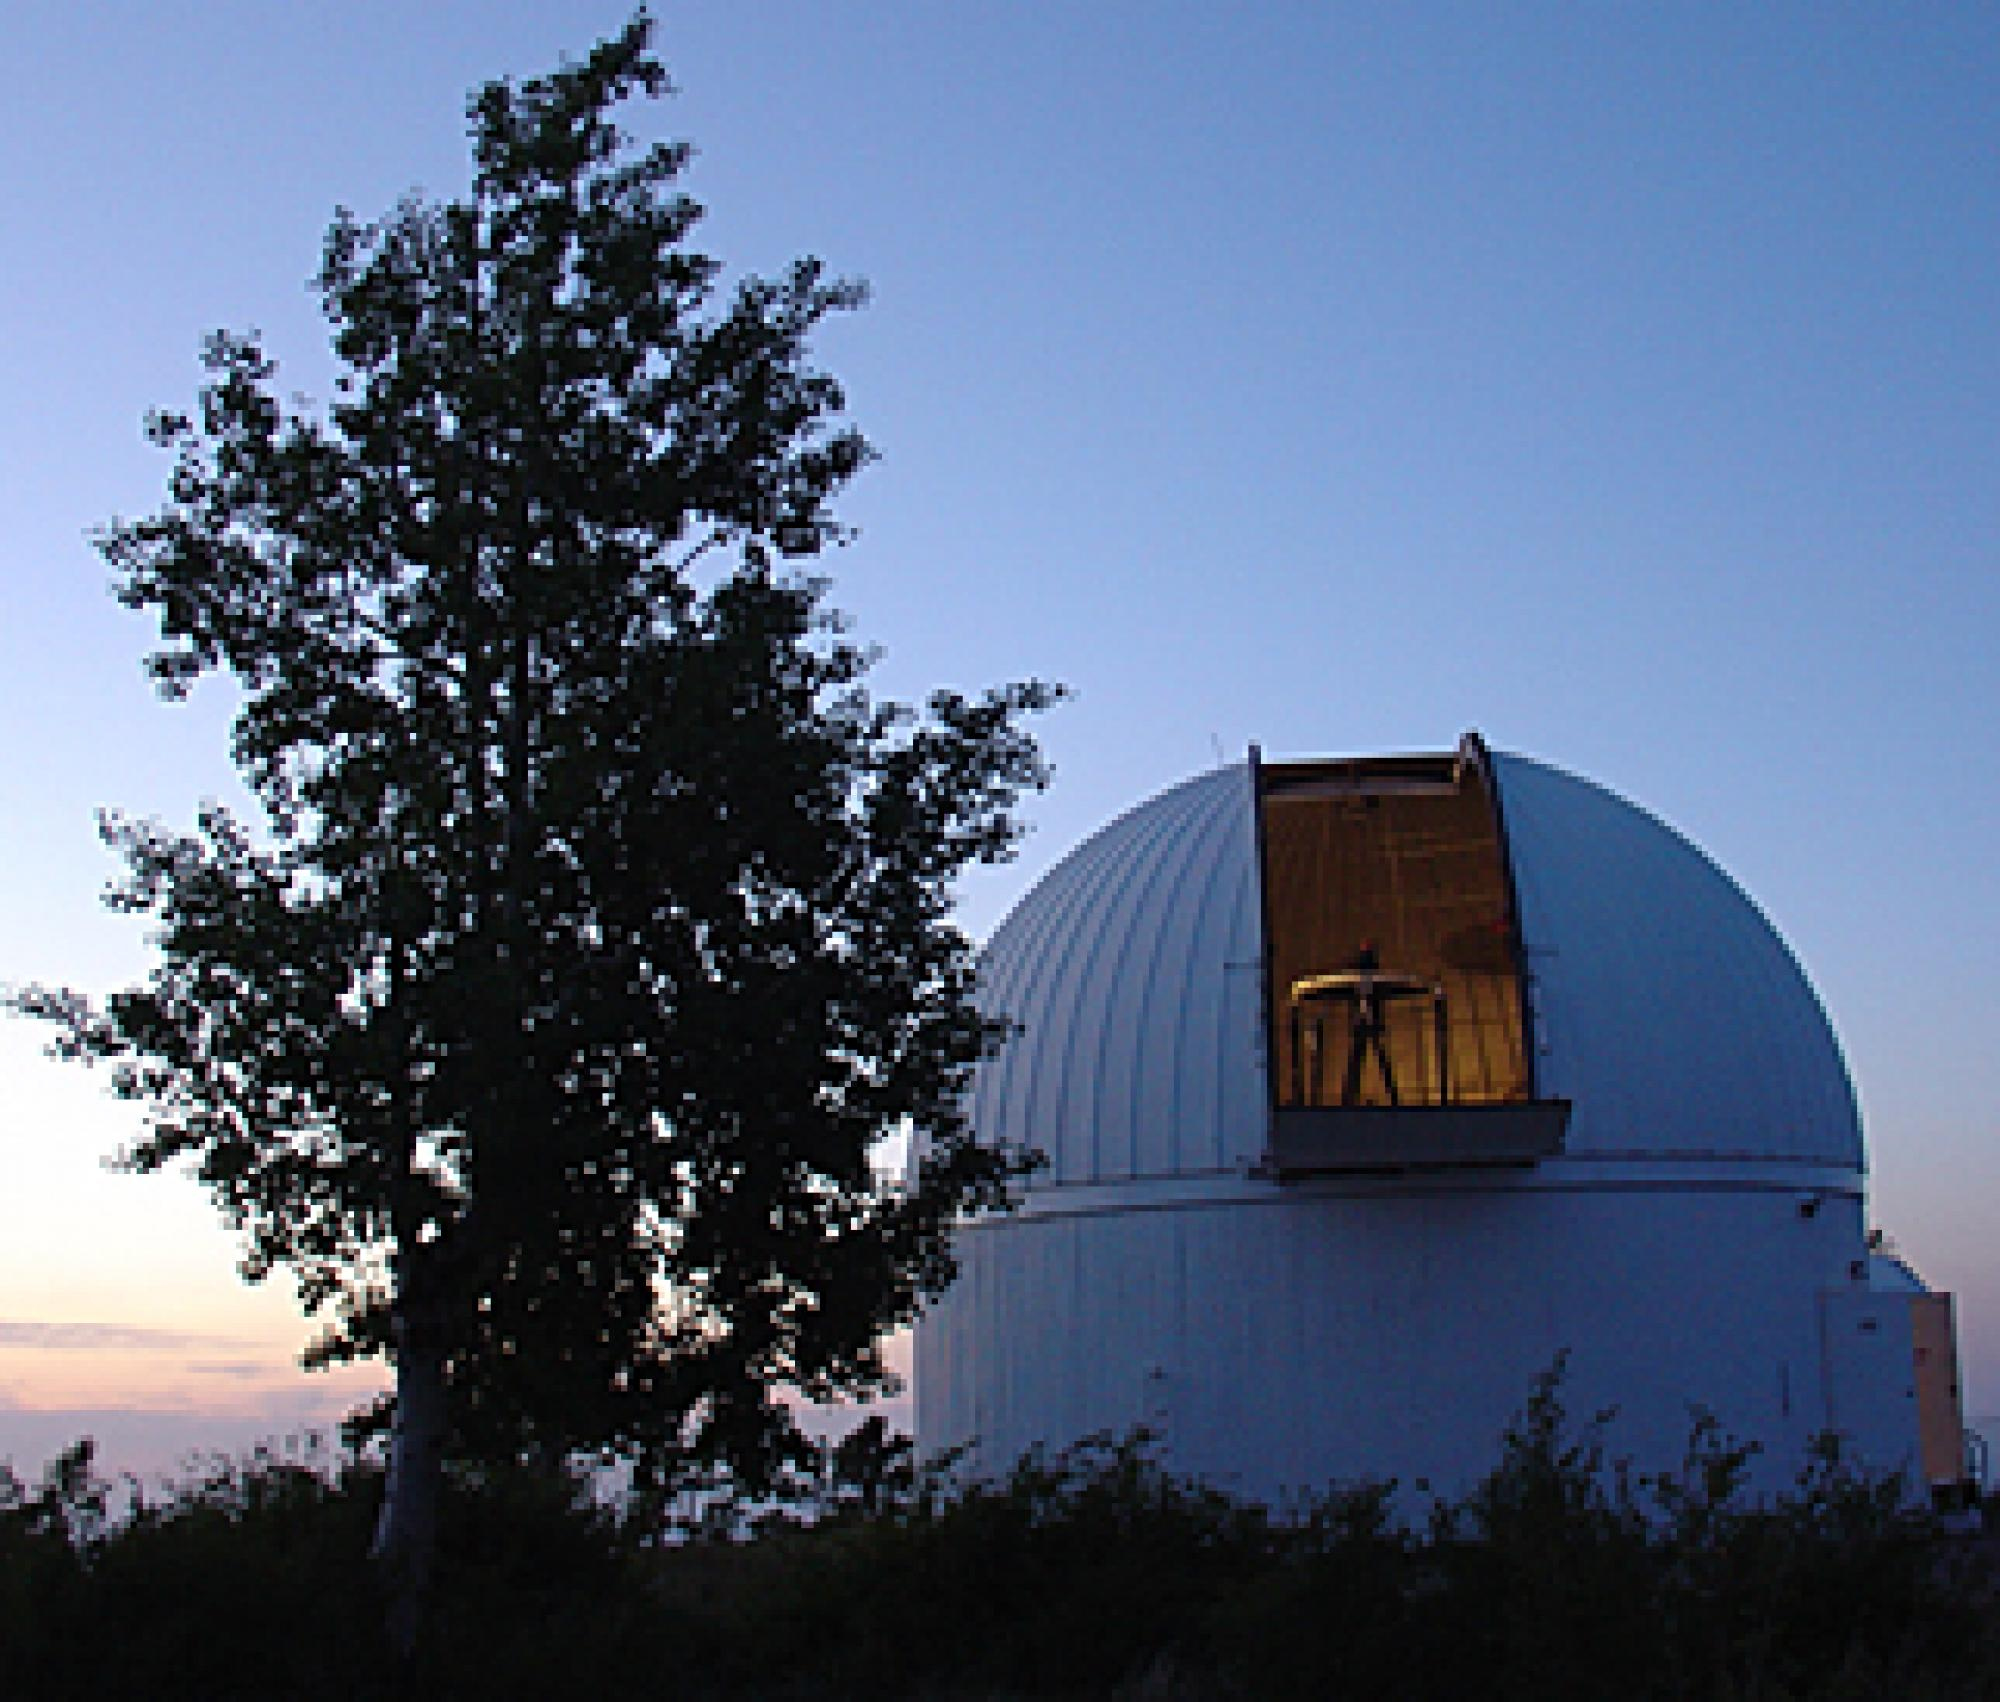 The 60-inch telescope on Mount Lemmon is one of three telescopes the Catalina Sky Survey used in finding 565 near-Earth objects in 2008.